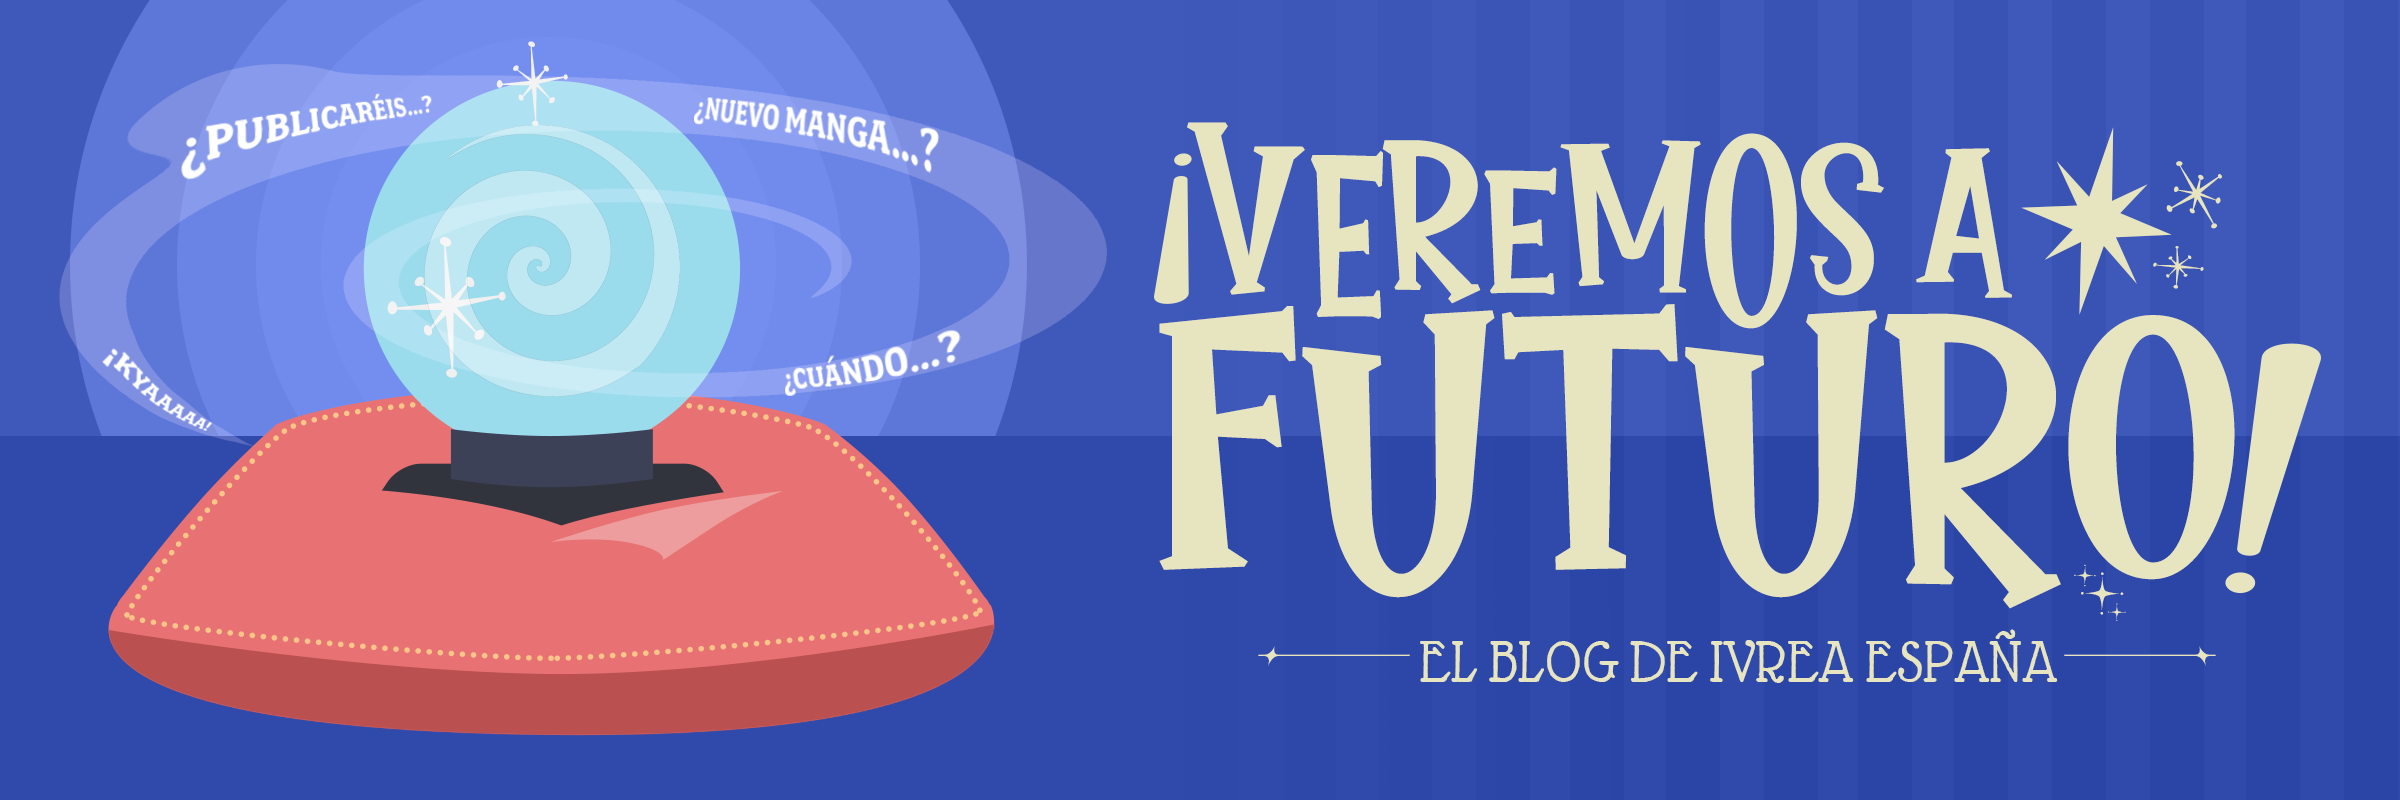 ¡Veremos a futuro! El blog de Ivrea España